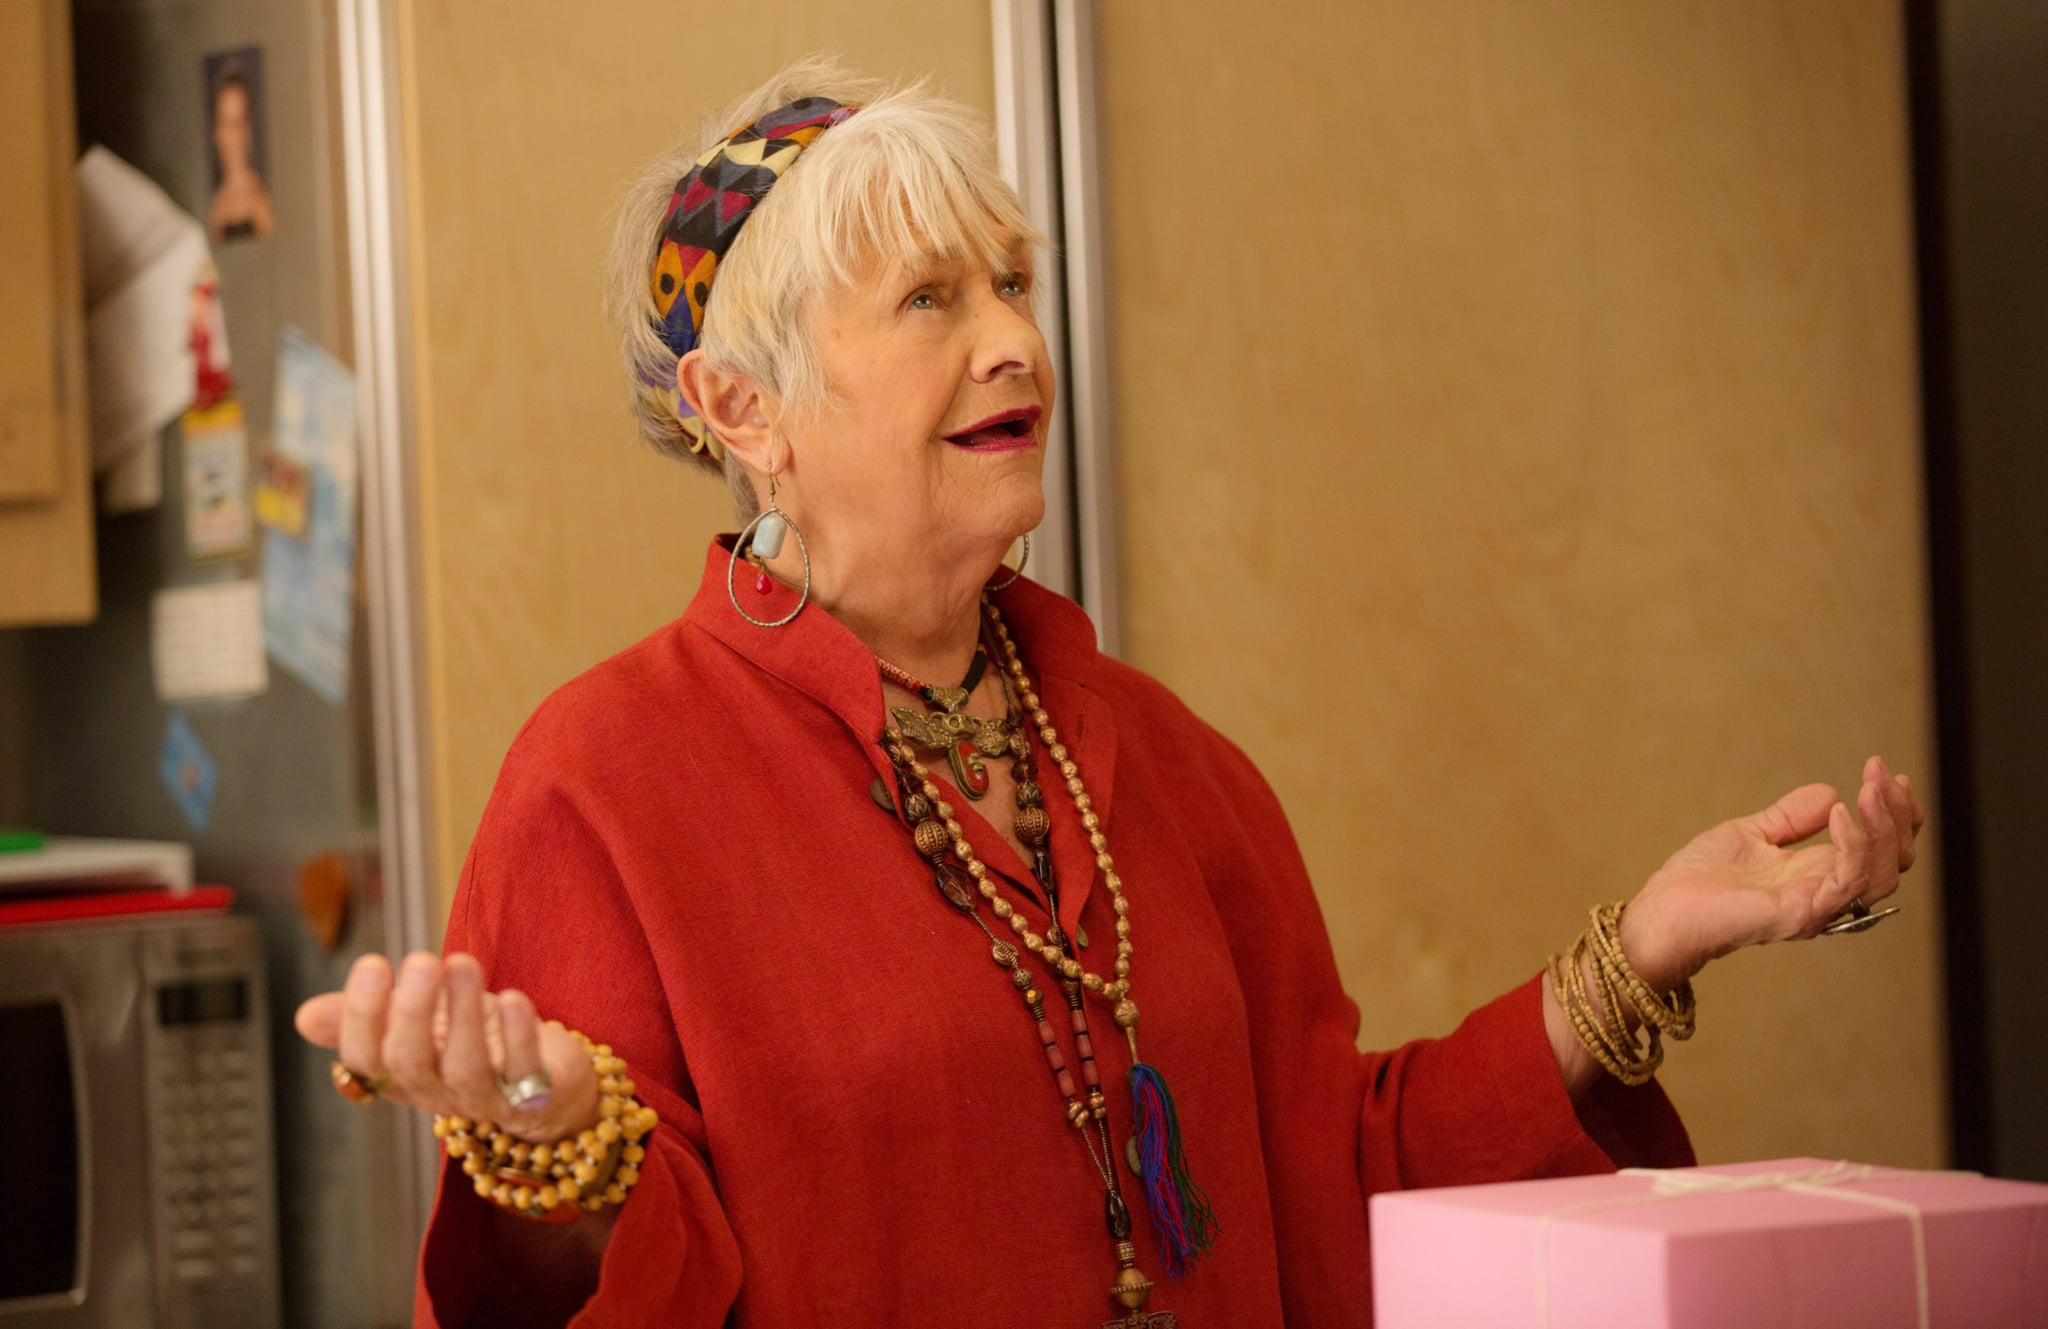 GRACE AND FRANKIE, Estelle Parsons, 'The Party', (Season 2, ep. 212, airs May 6, 2016). photo: Karen Ballard / Netflix / courtesy Everett Collection